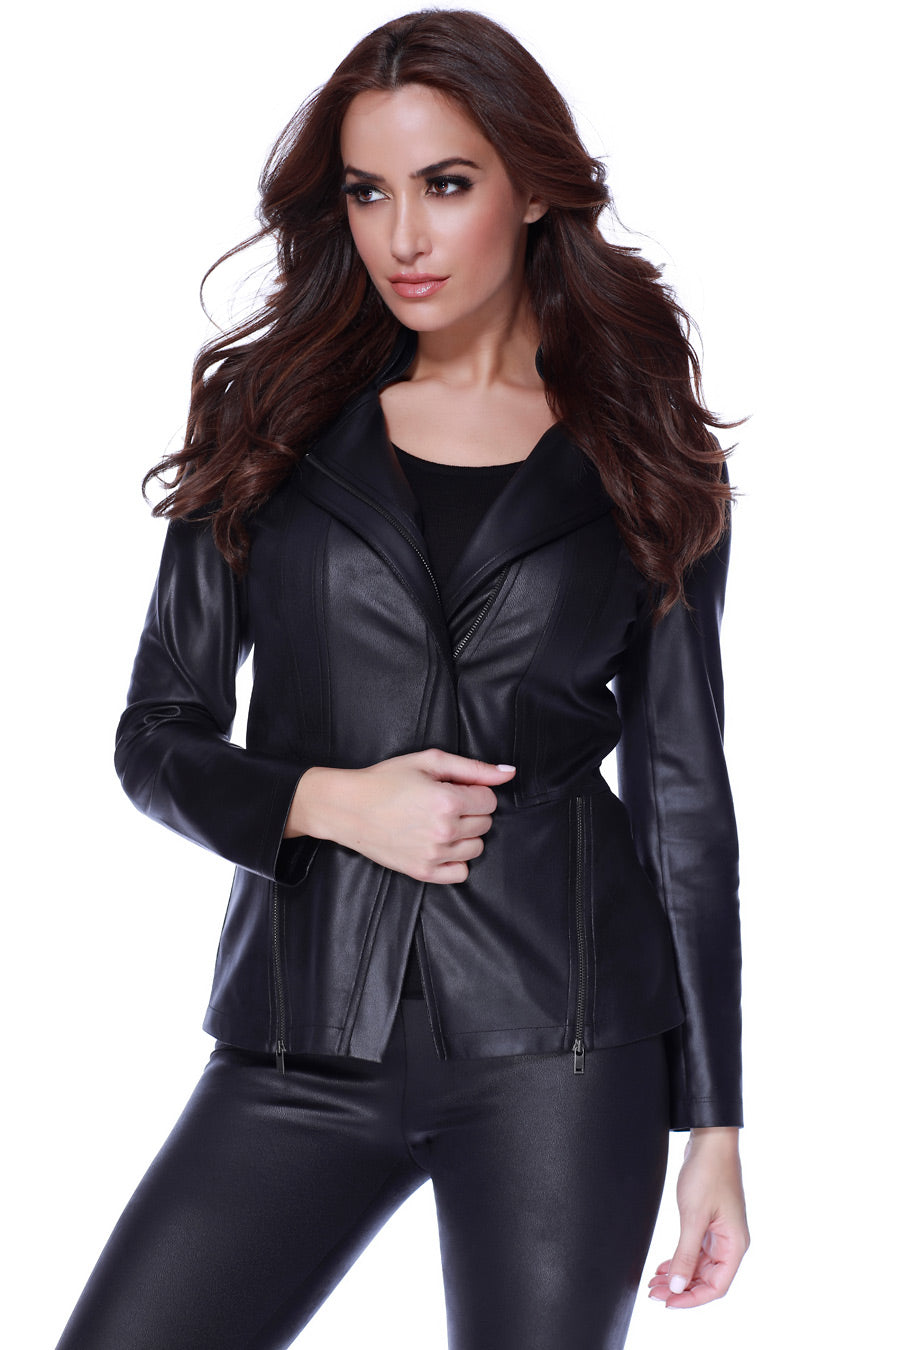 Microfiber Leather Jacket